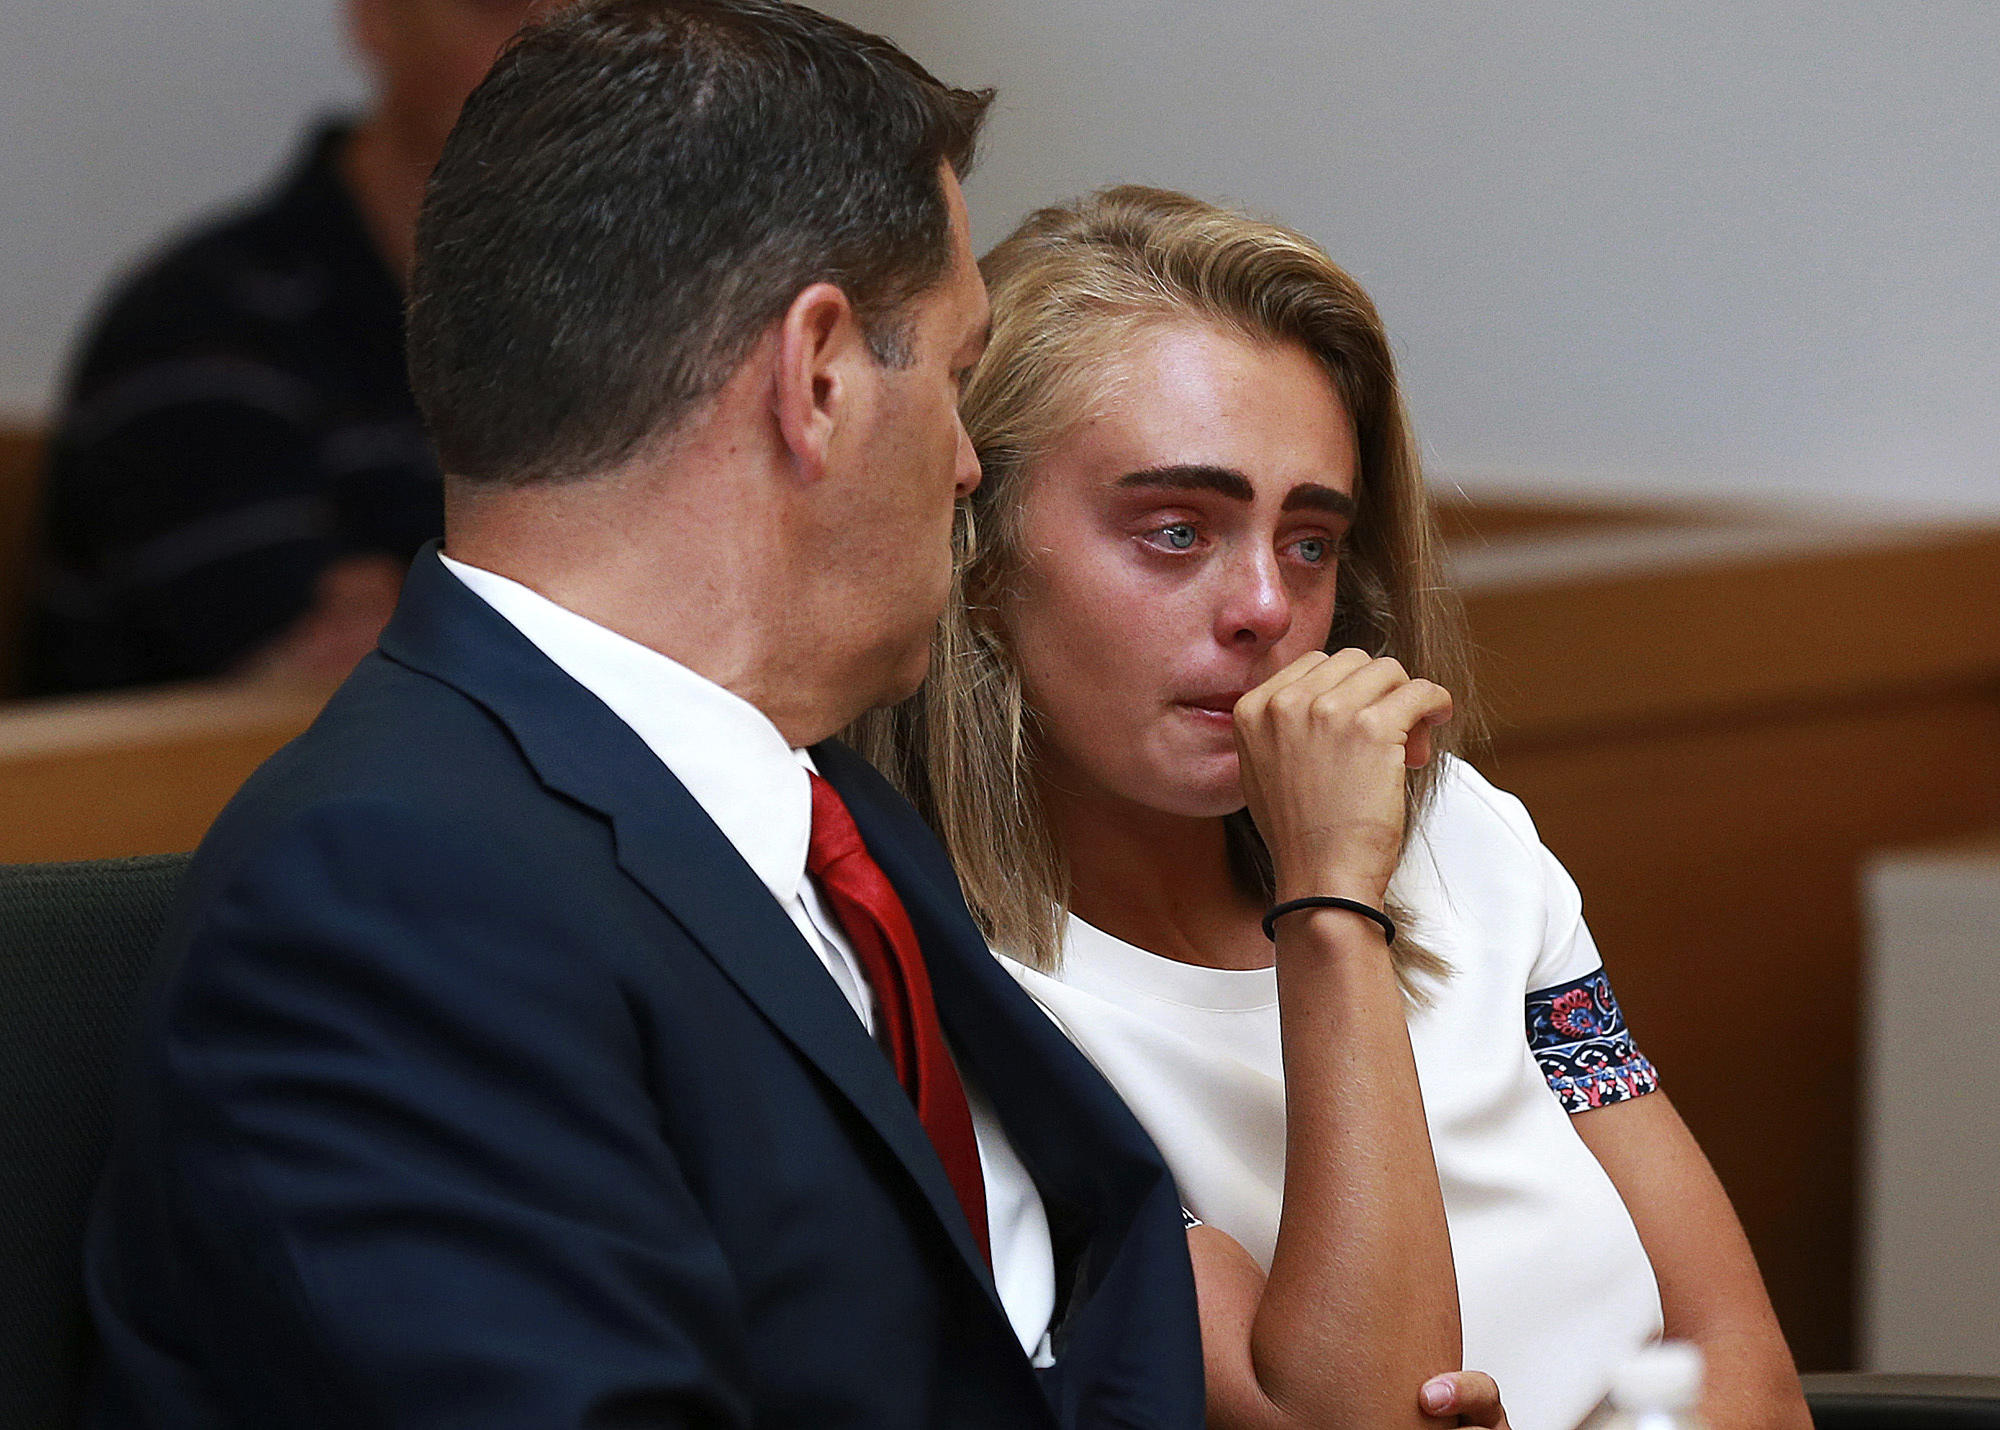 Awe Inspiring Texting Suicide Case Michelle Carter Sentenced To Serve At Machost Co Dining Chair Design Ideas Machostcouk